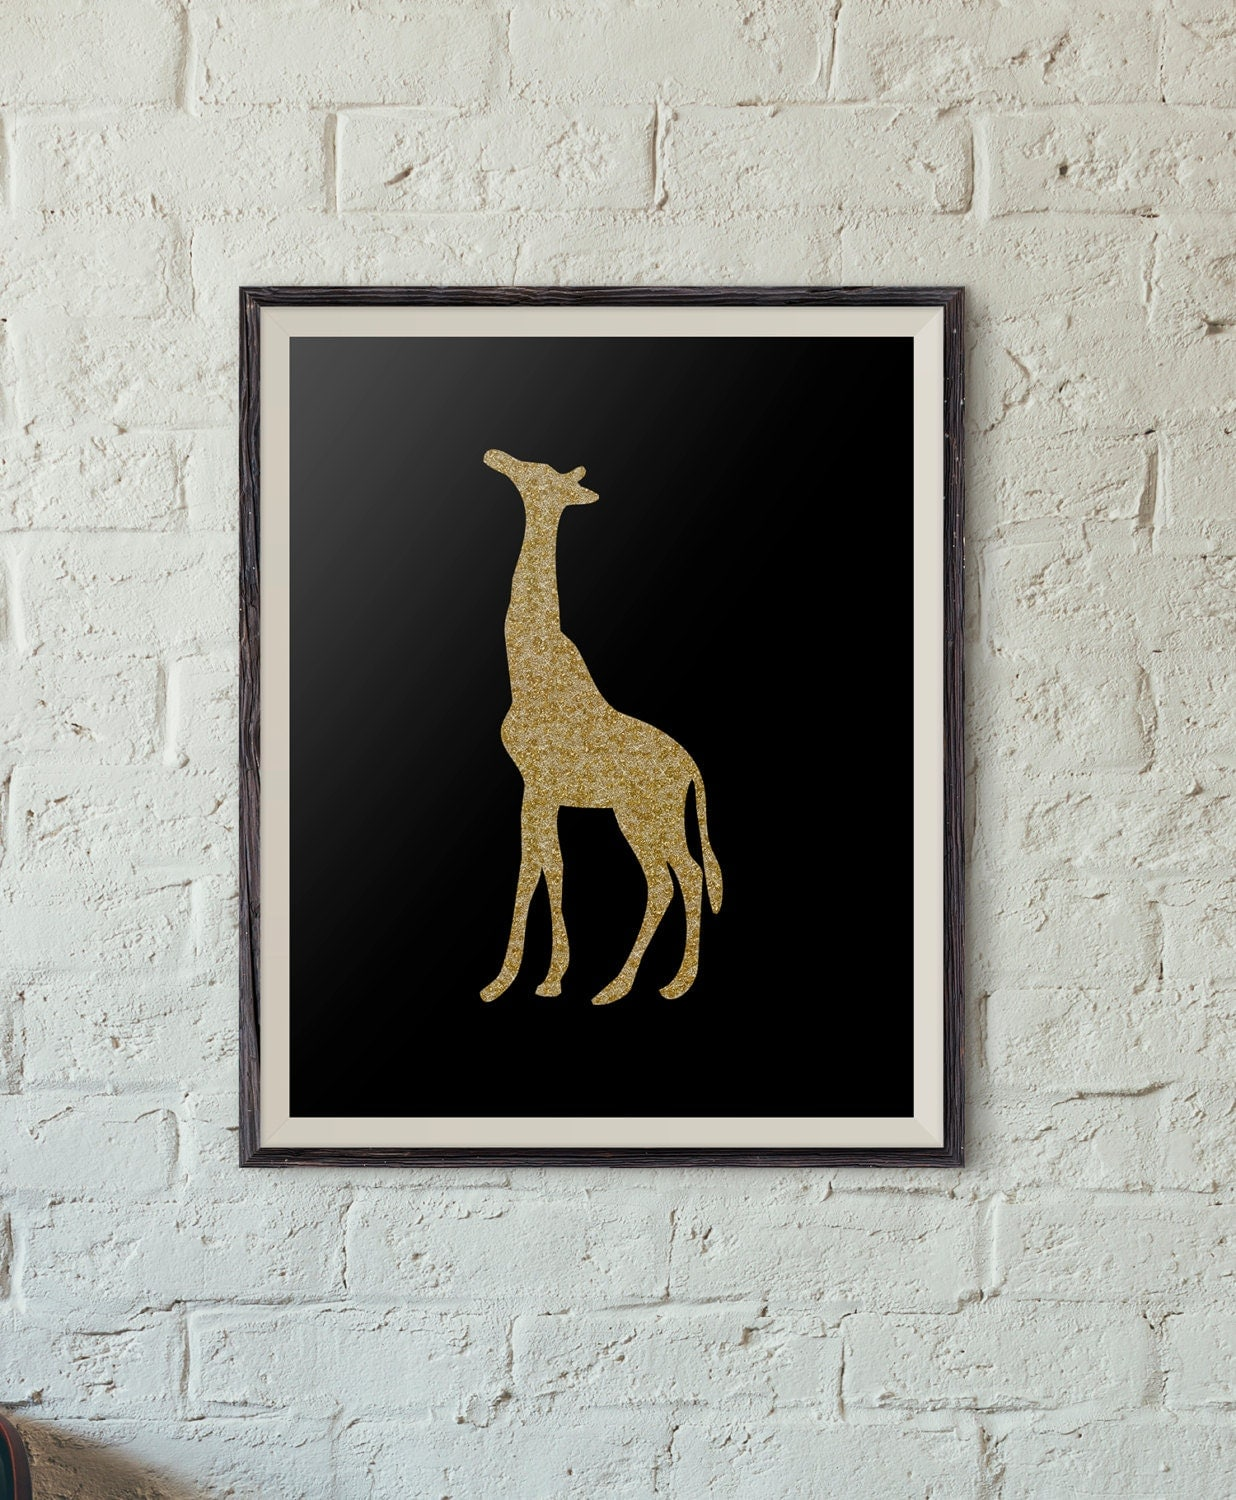 Wall Art Black Gold : Printable wall art black and gold sparkle giraffe by